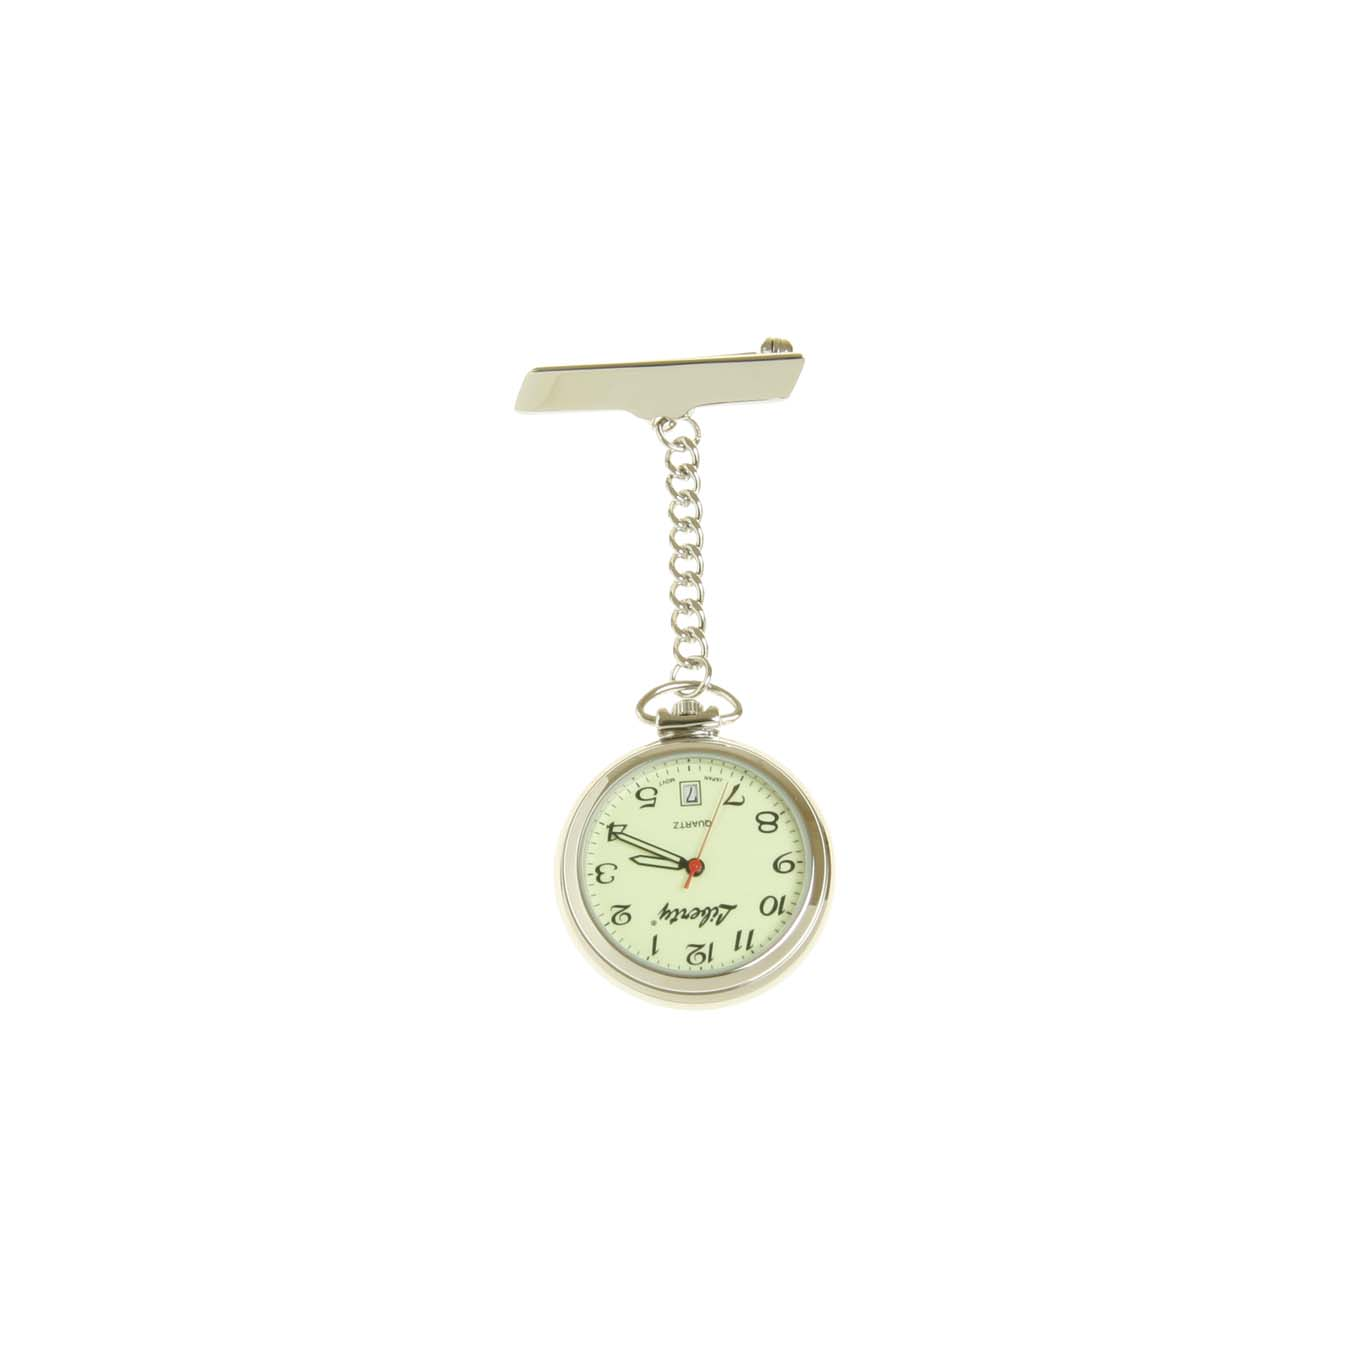 NW613WD_1_Nurses-Watch-Silver-Luminous-Dial-with-Date